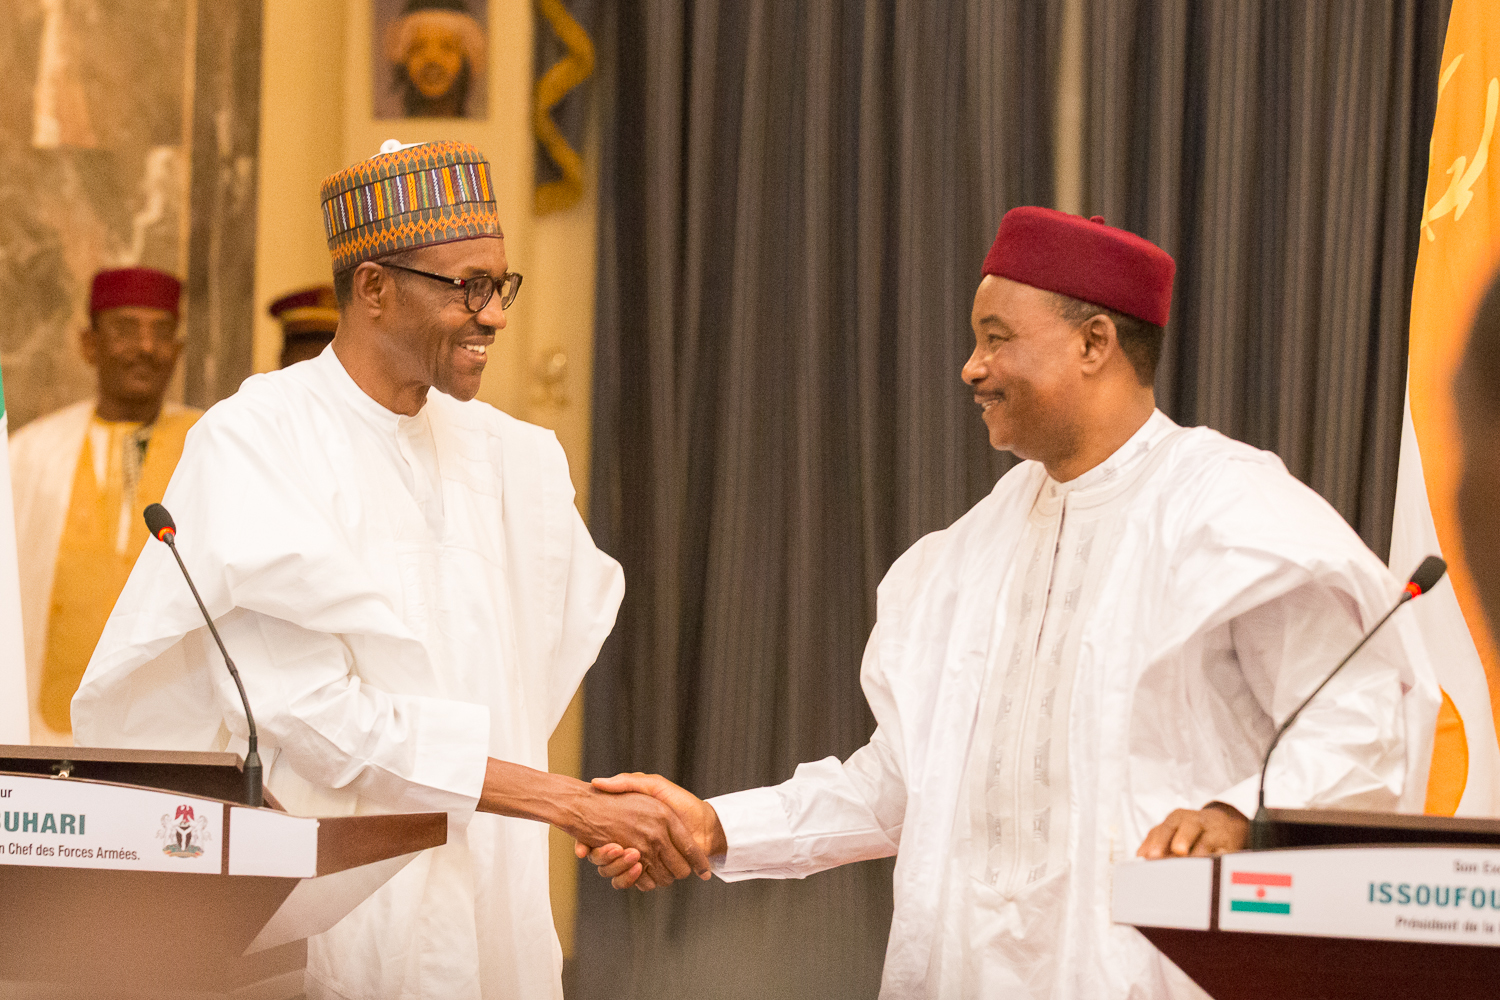 Buhari Niger 6 - President Buhari to Attend Niger Republic's 59th Independence Anniversary